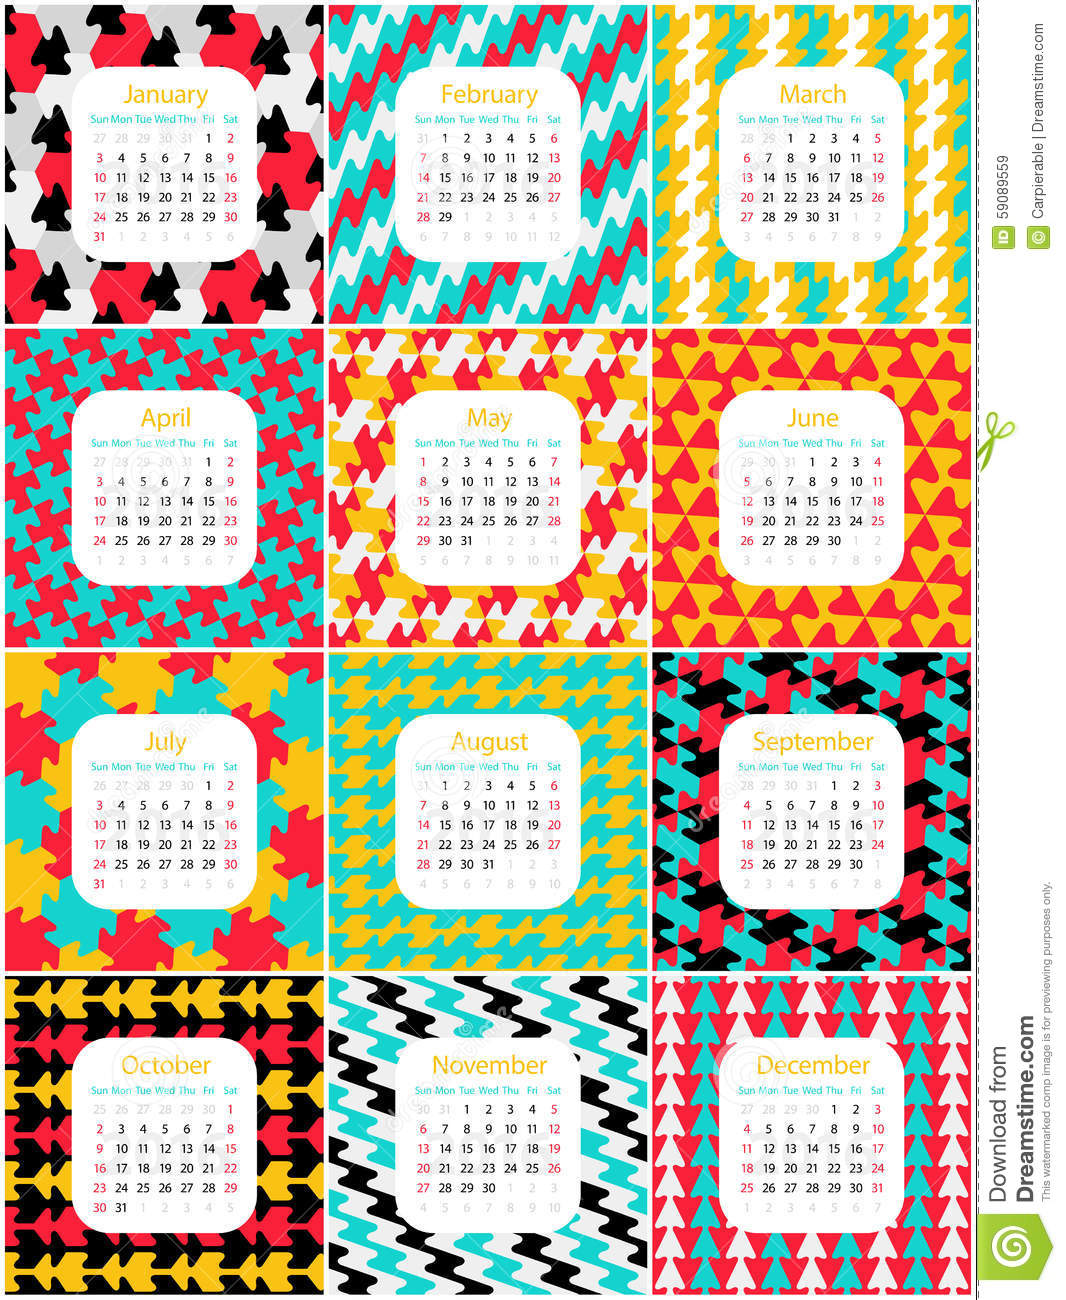 Los Mese Del Año En Ingles 2016 English Calendar Stock Vector Illustration Of Sunday 59089559